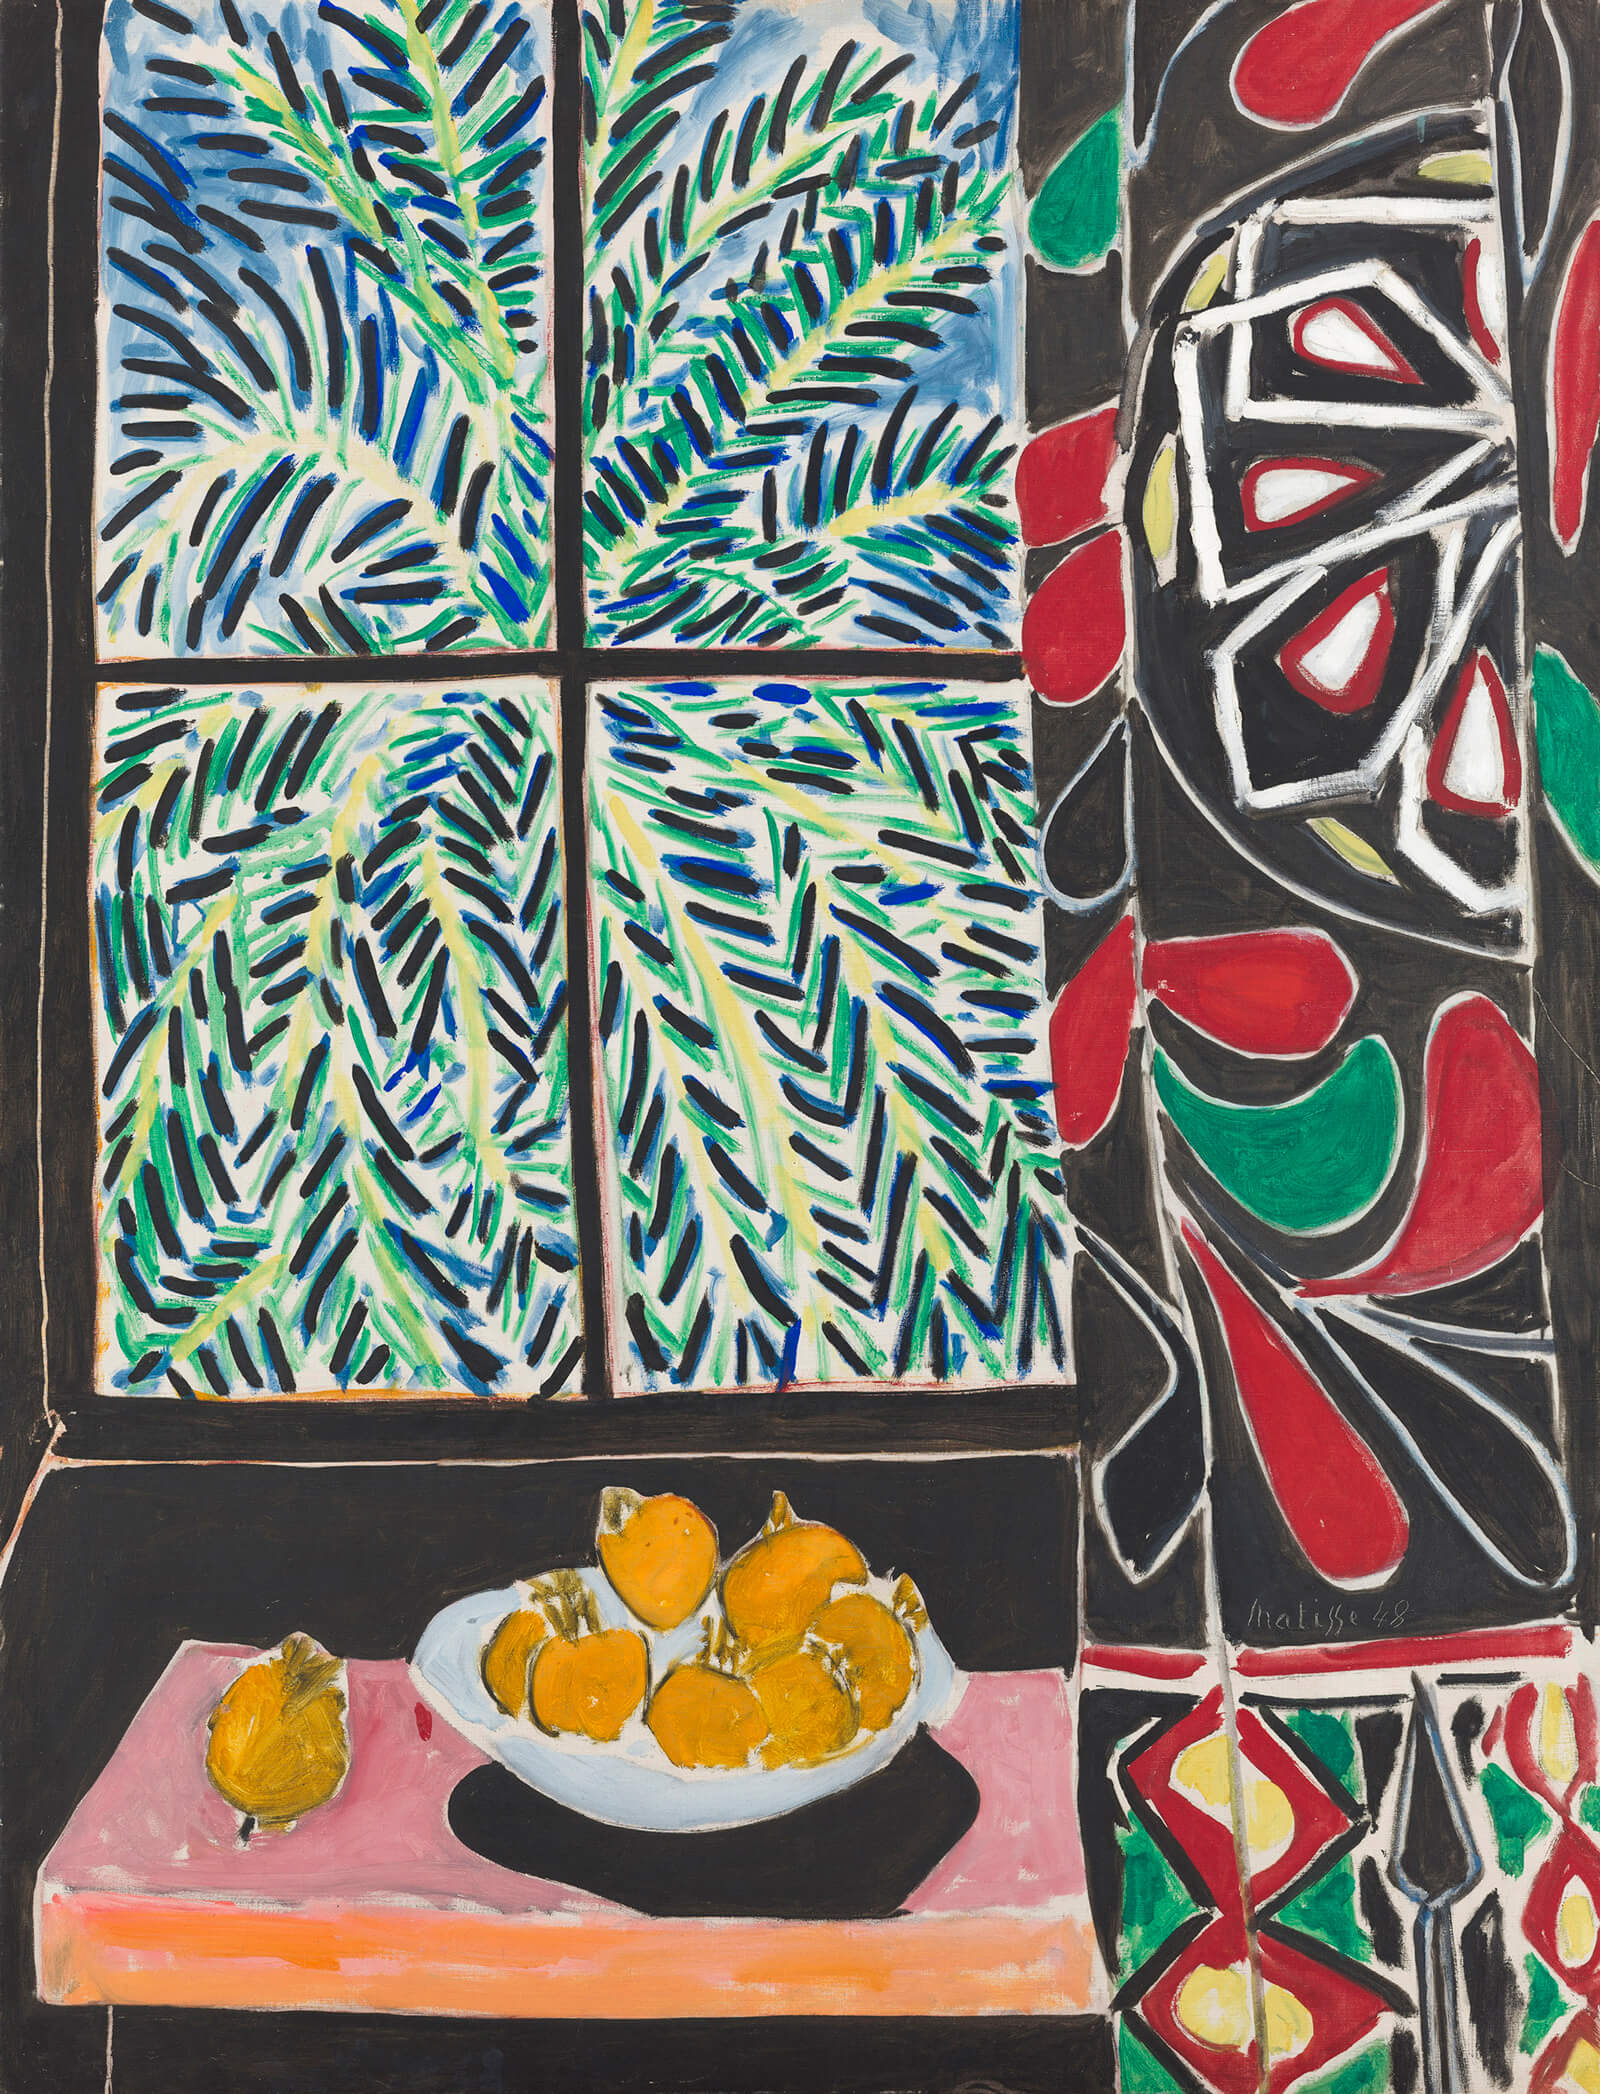 Henri Matisse, Interior with Egyptian Curtain, 1948, oil on canvas (© 2017 Succession H. Matisse and Artists Rights Society (ARS), New York/courtesy of the Museum of Fine Arts, Boston/The Phillips Collection, Washington D.C.)